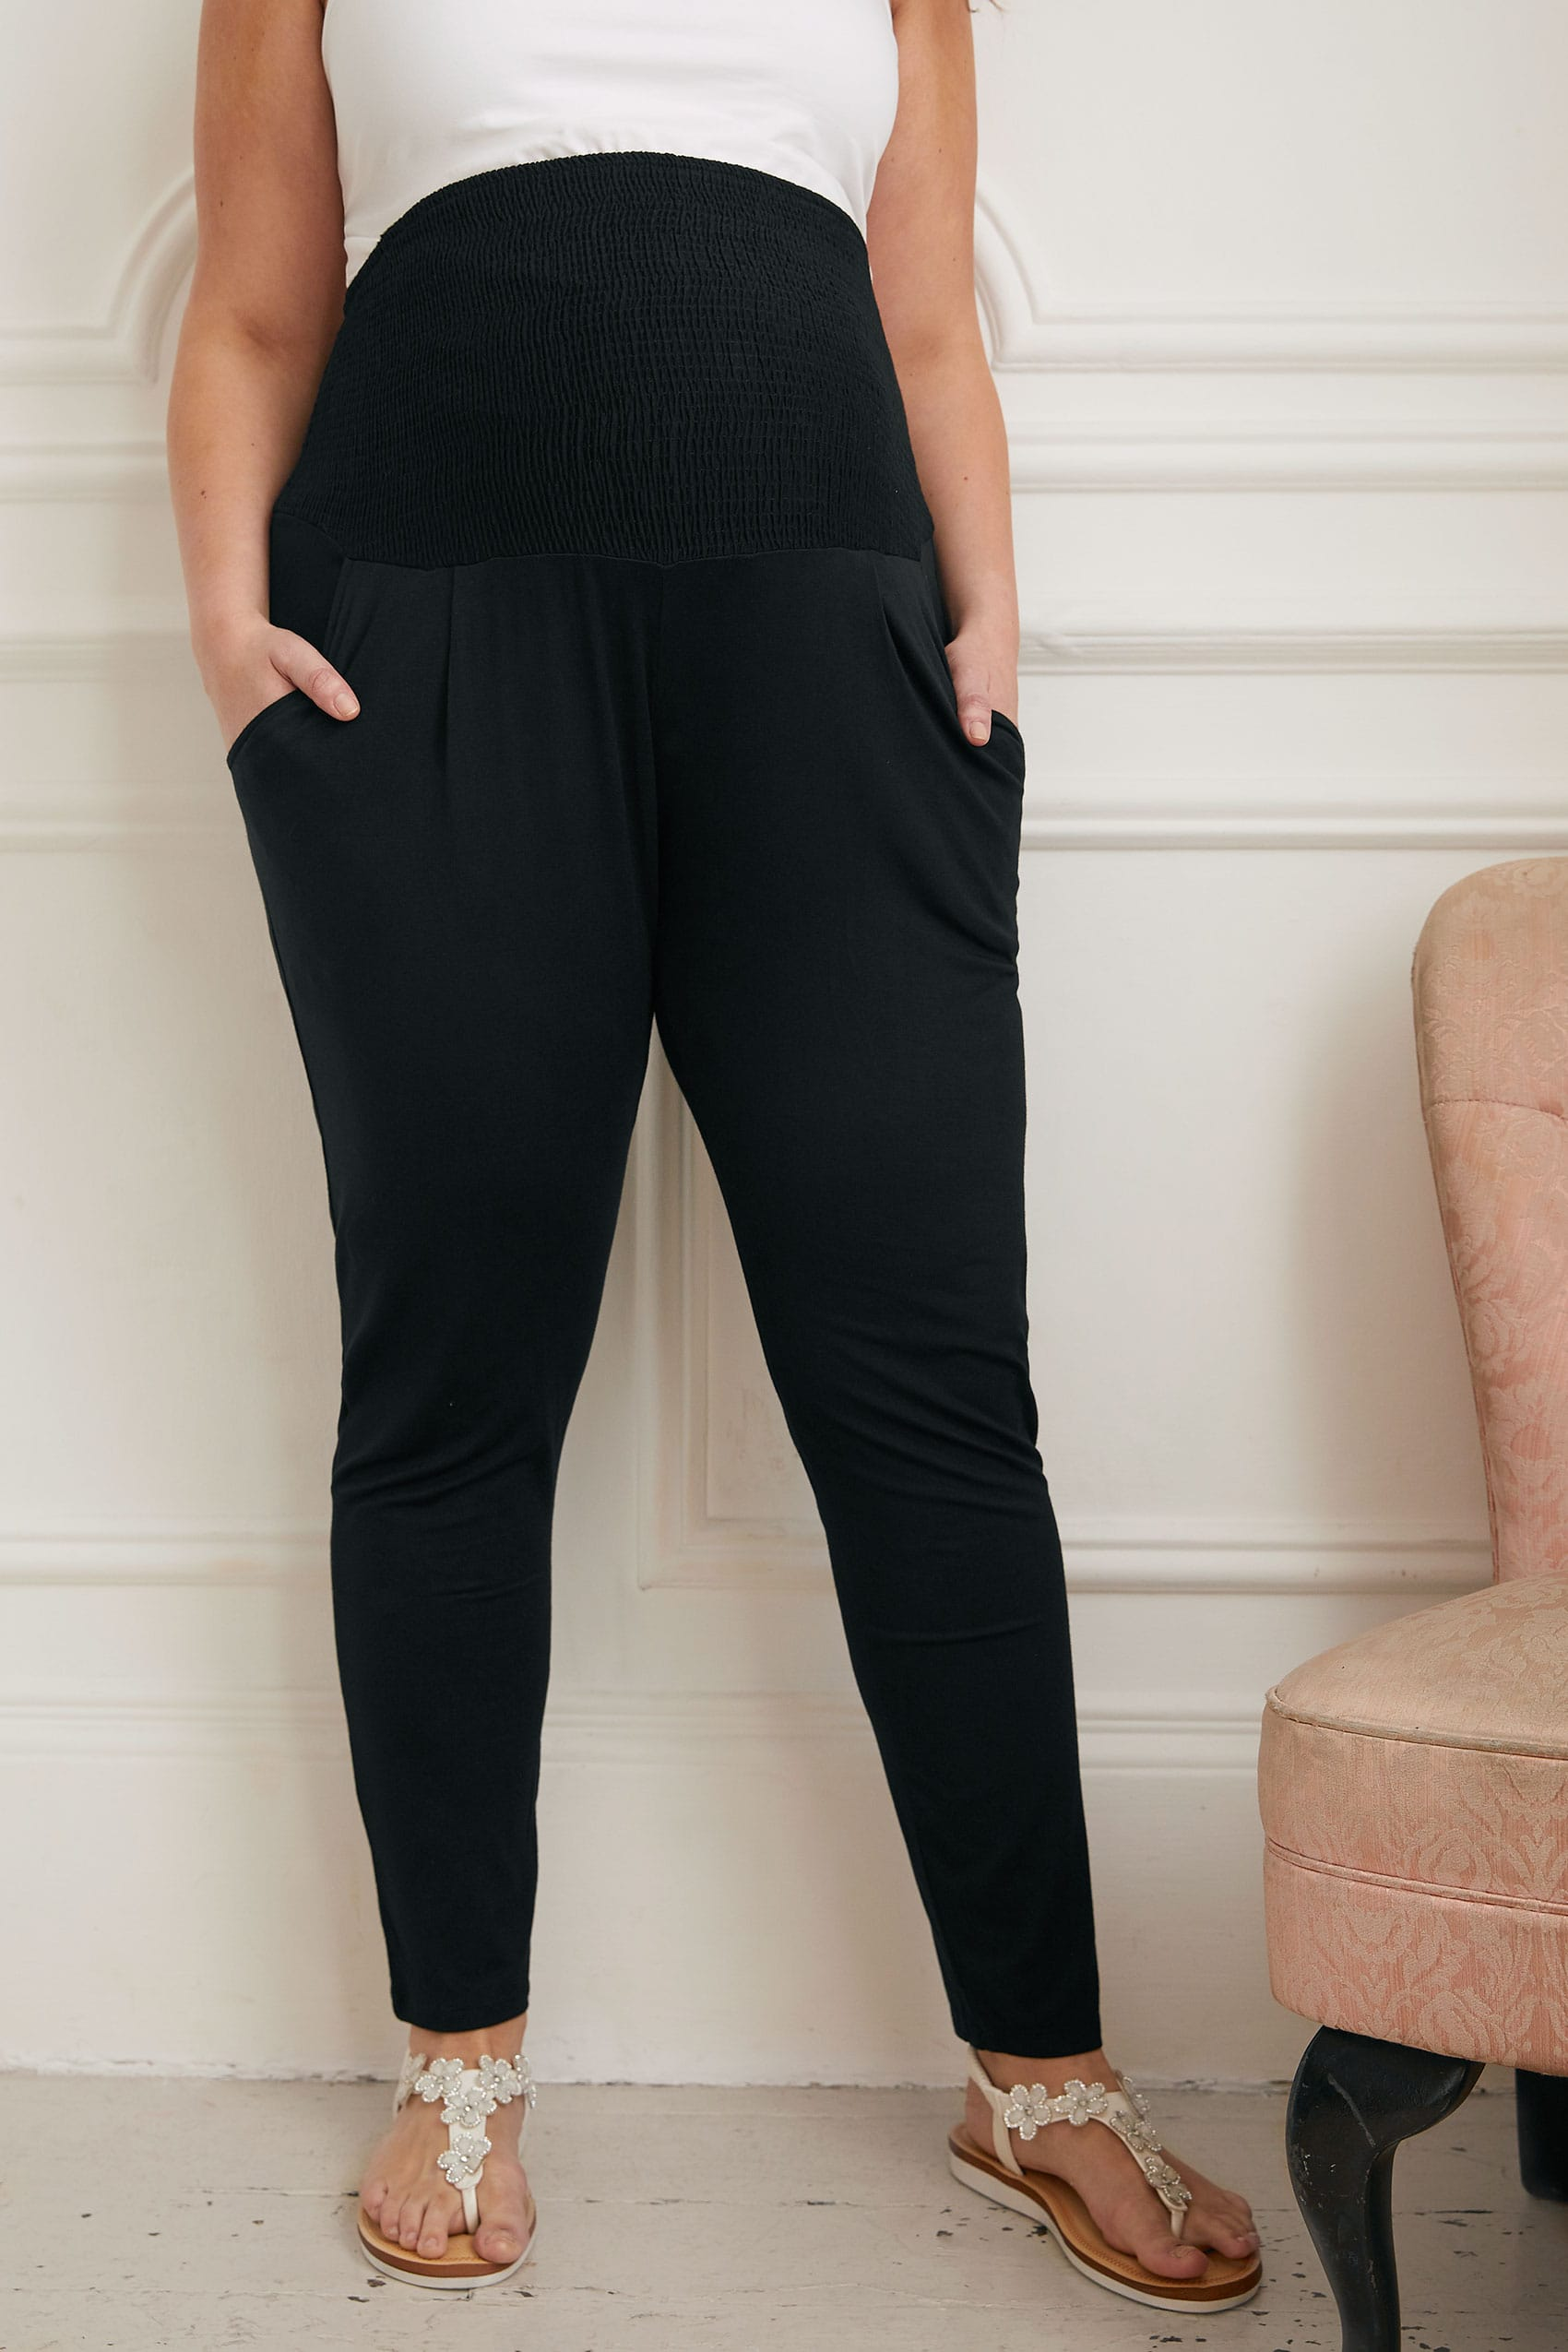 2c1a5a3f223 BUMP IT UP MATERNITY Black Harem Trousers With Comfort Panel